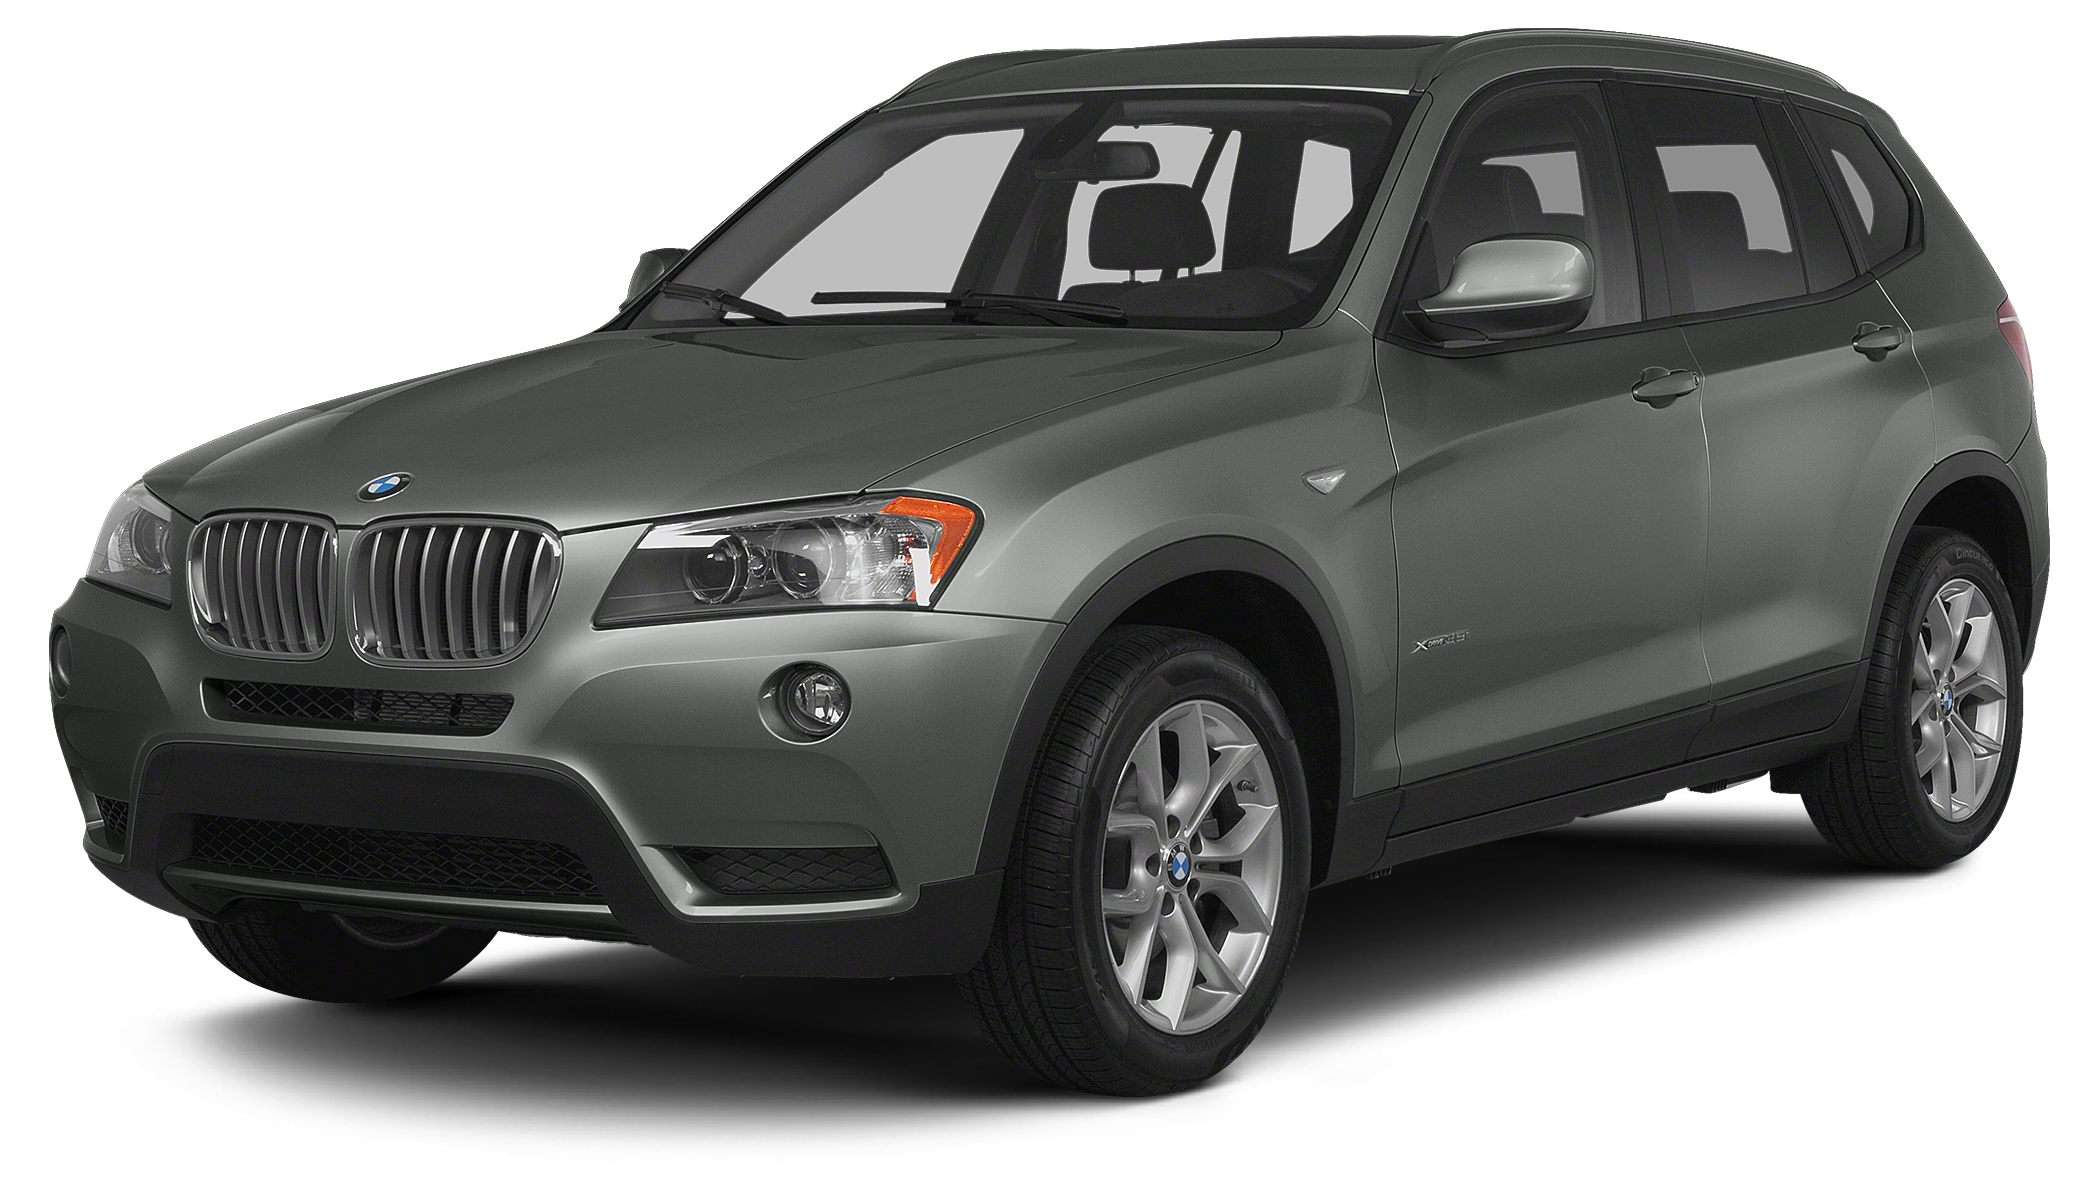 2014 BMW X3 xDrive28i  WHEN IT COMES TO EXCELLENCE IN USED CAR SALESYOU KNOW YOURE AT STAR A